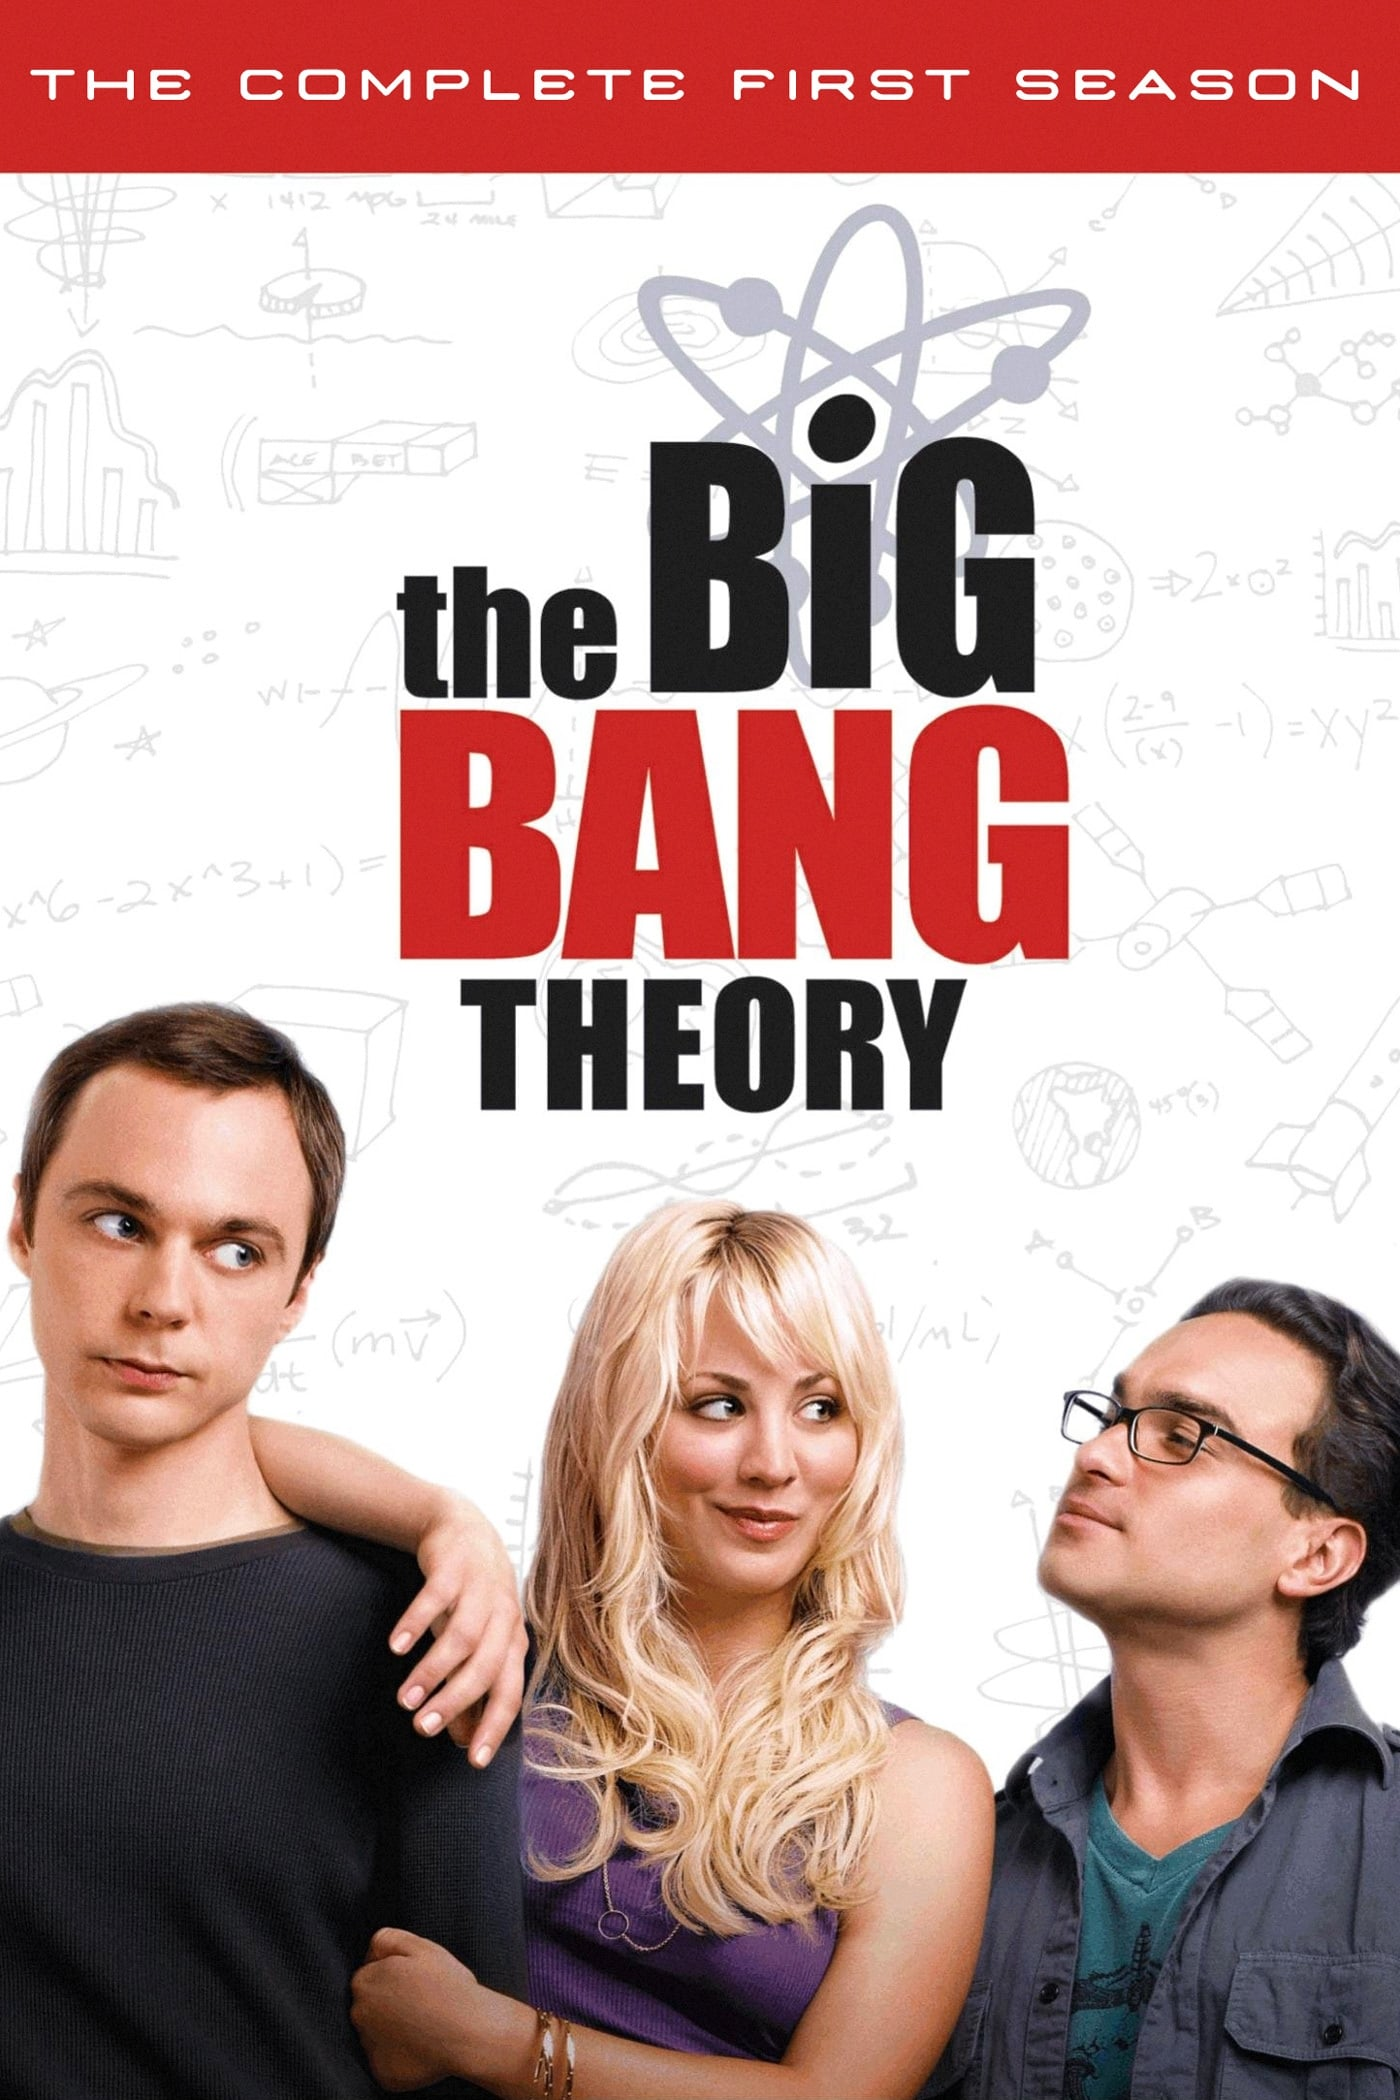 http://tinbongda24h.com/the-big-bang-theory-1a-temporada-2007-bluray-720p-dual-audio-torrent-download/